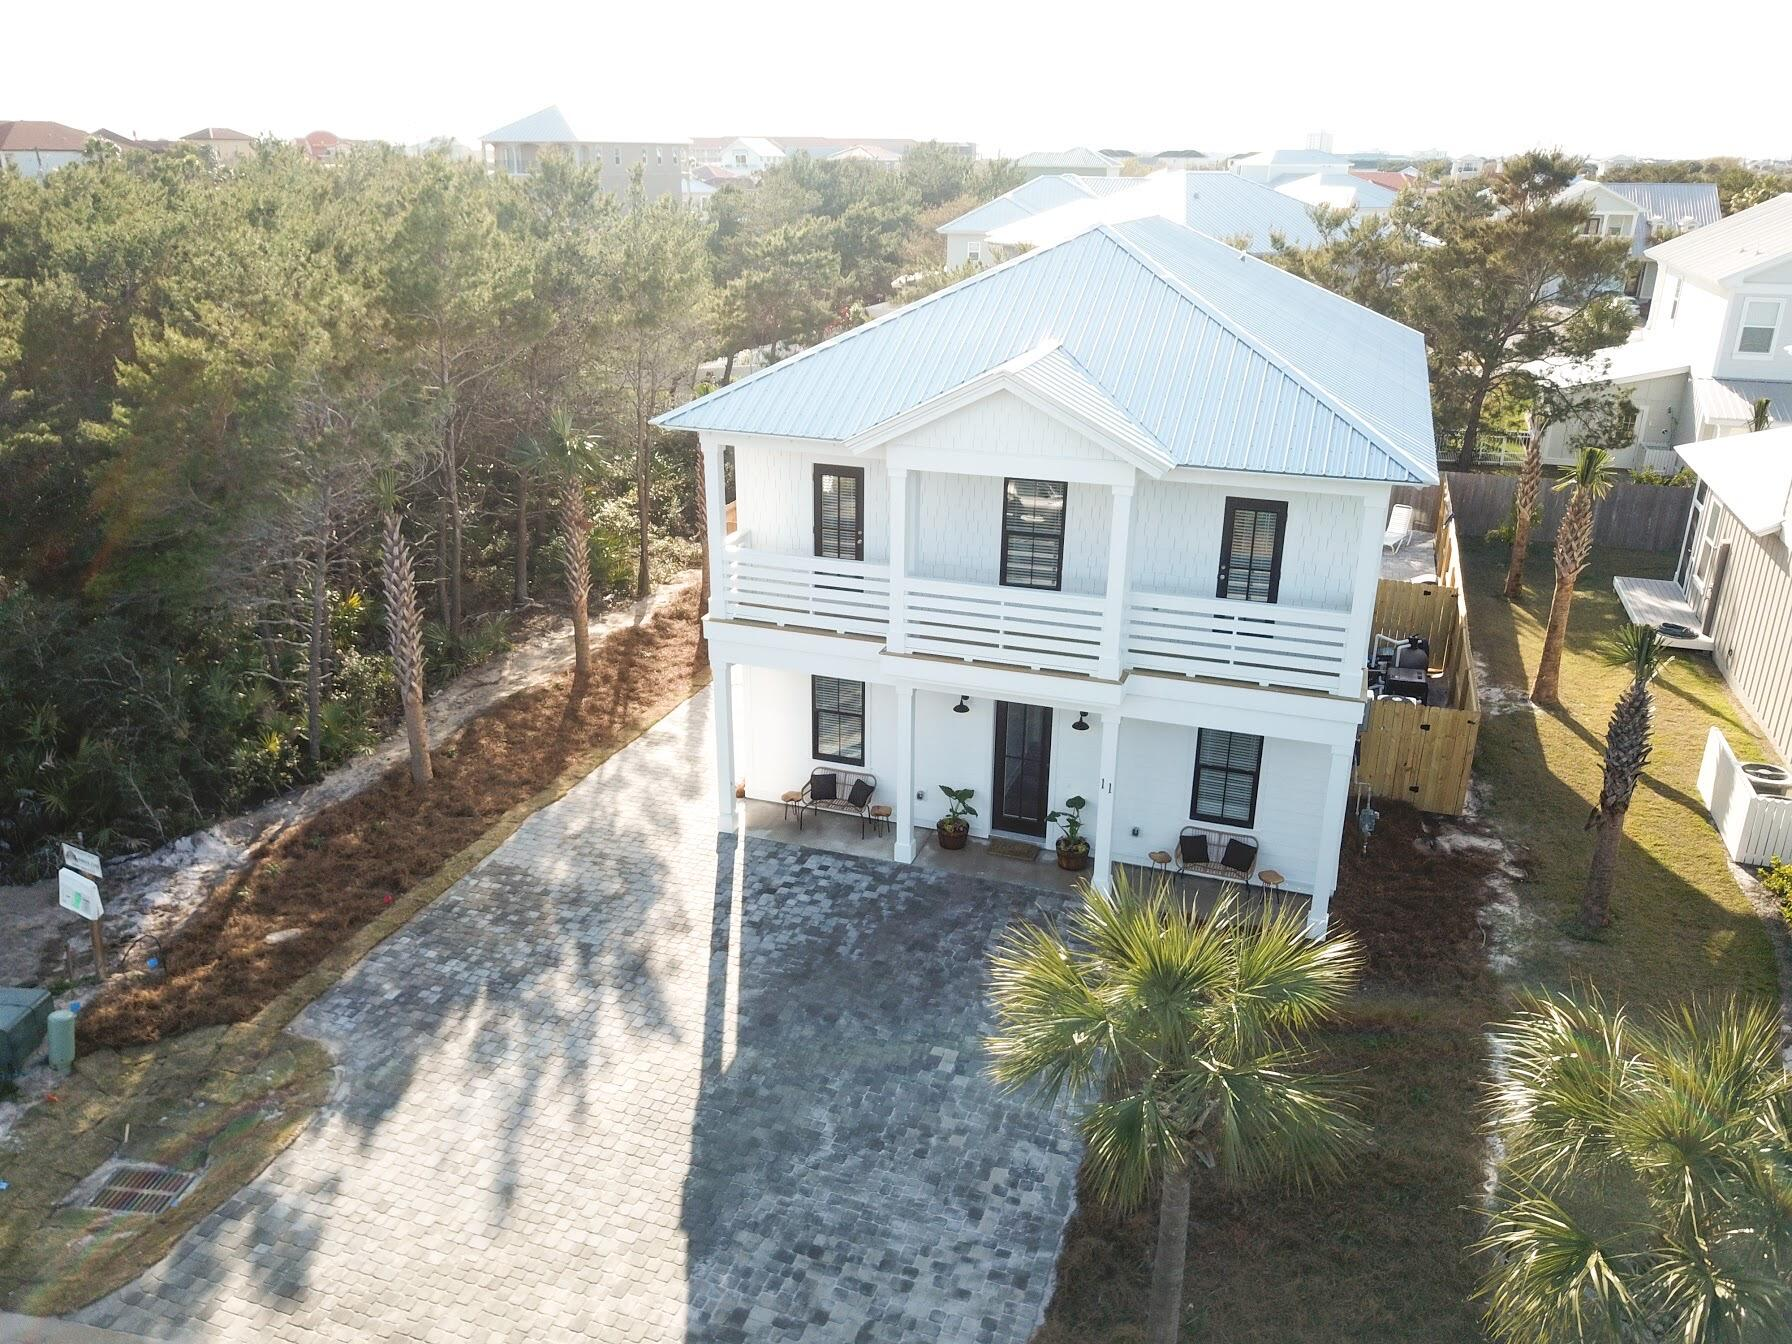 Nestled in the beautiful community of Frangista Beach with private deeded beach access, this brand new home is sold fully furnished with master on main. A rental machine that's already boasting $180,699 as the gross income total on the books for 2021. And $129,868.15 as the base rental rate total on the books for 2021, & can comfortably sleep 20 people! This spacious 2-story, 6-bedroom, 6.5-bathroom vacation home features a private heated pool for your enjoyment.